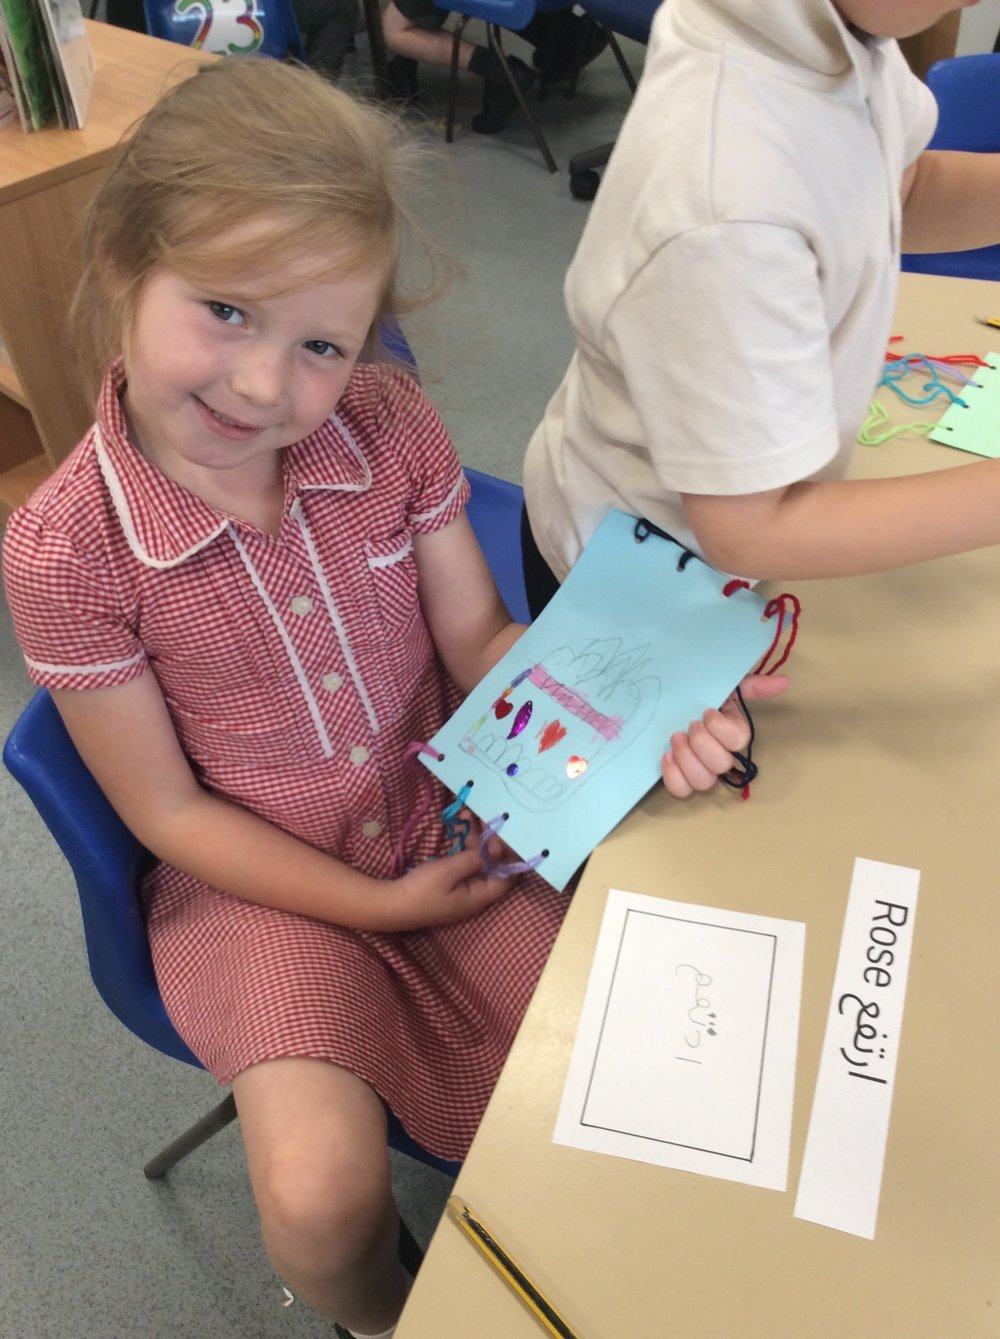 The reception children had a fun day making prayer mats, similar to the ones brought byImran, and they can be seen displayed outside their classrooms.